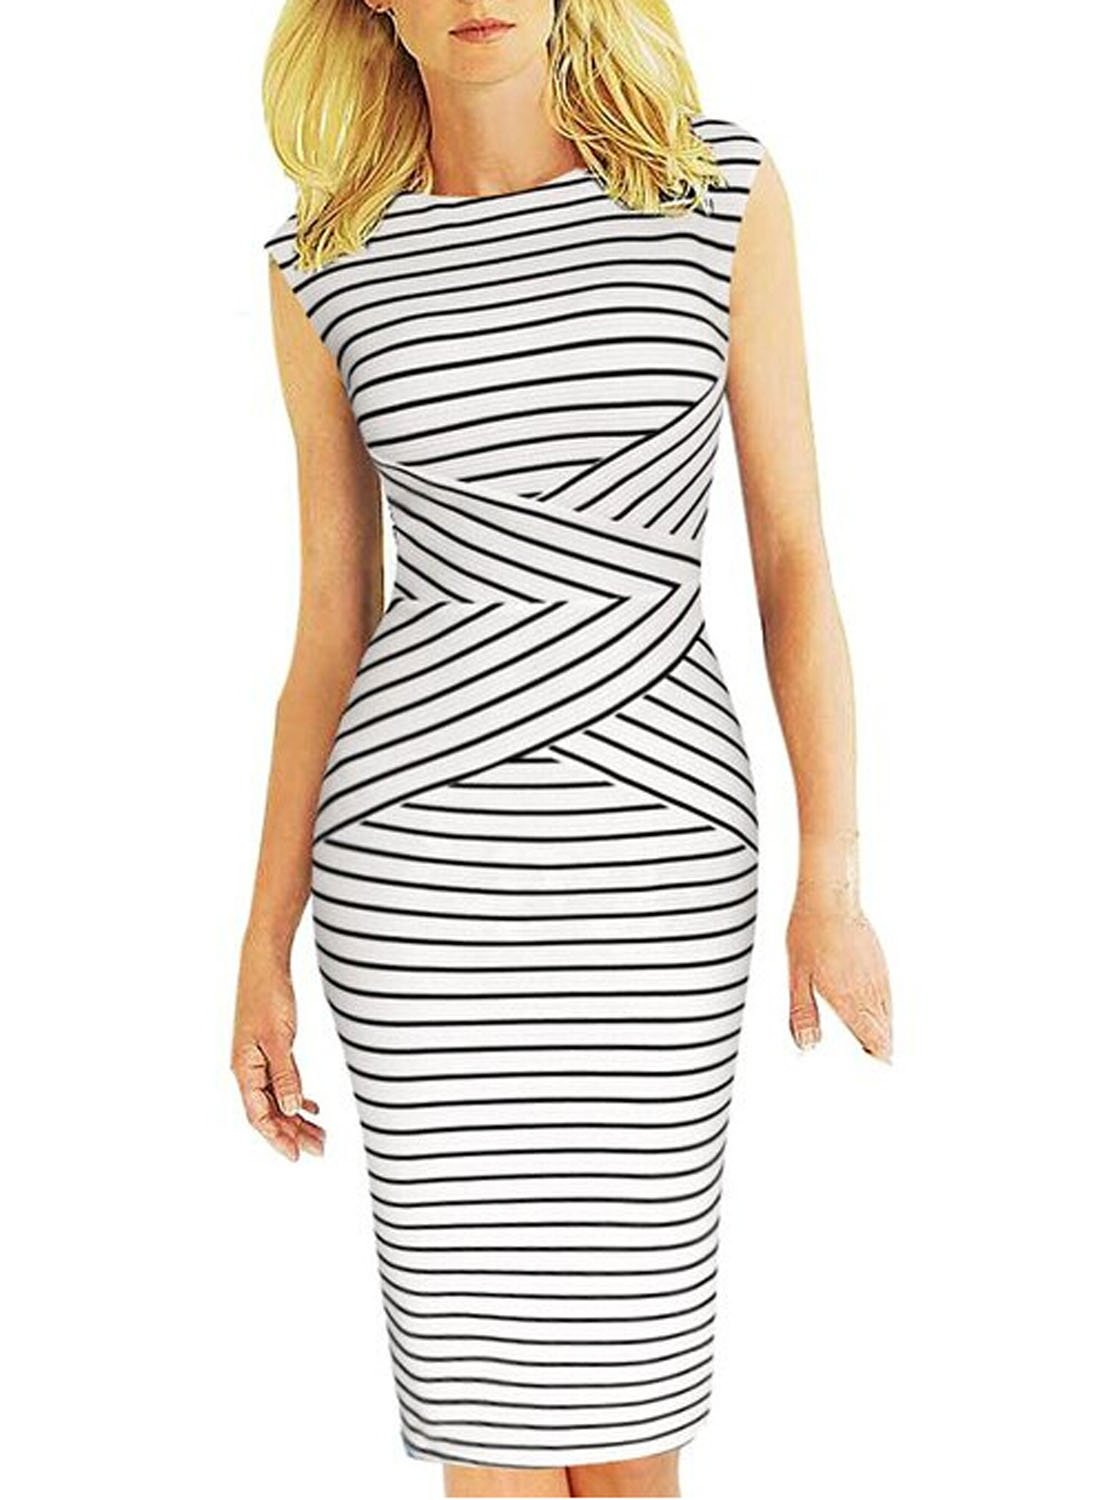 Viwenni® Women's Summer Striped Sleeveless Wear to Work Casual Party Pencil Dress,Medium,White